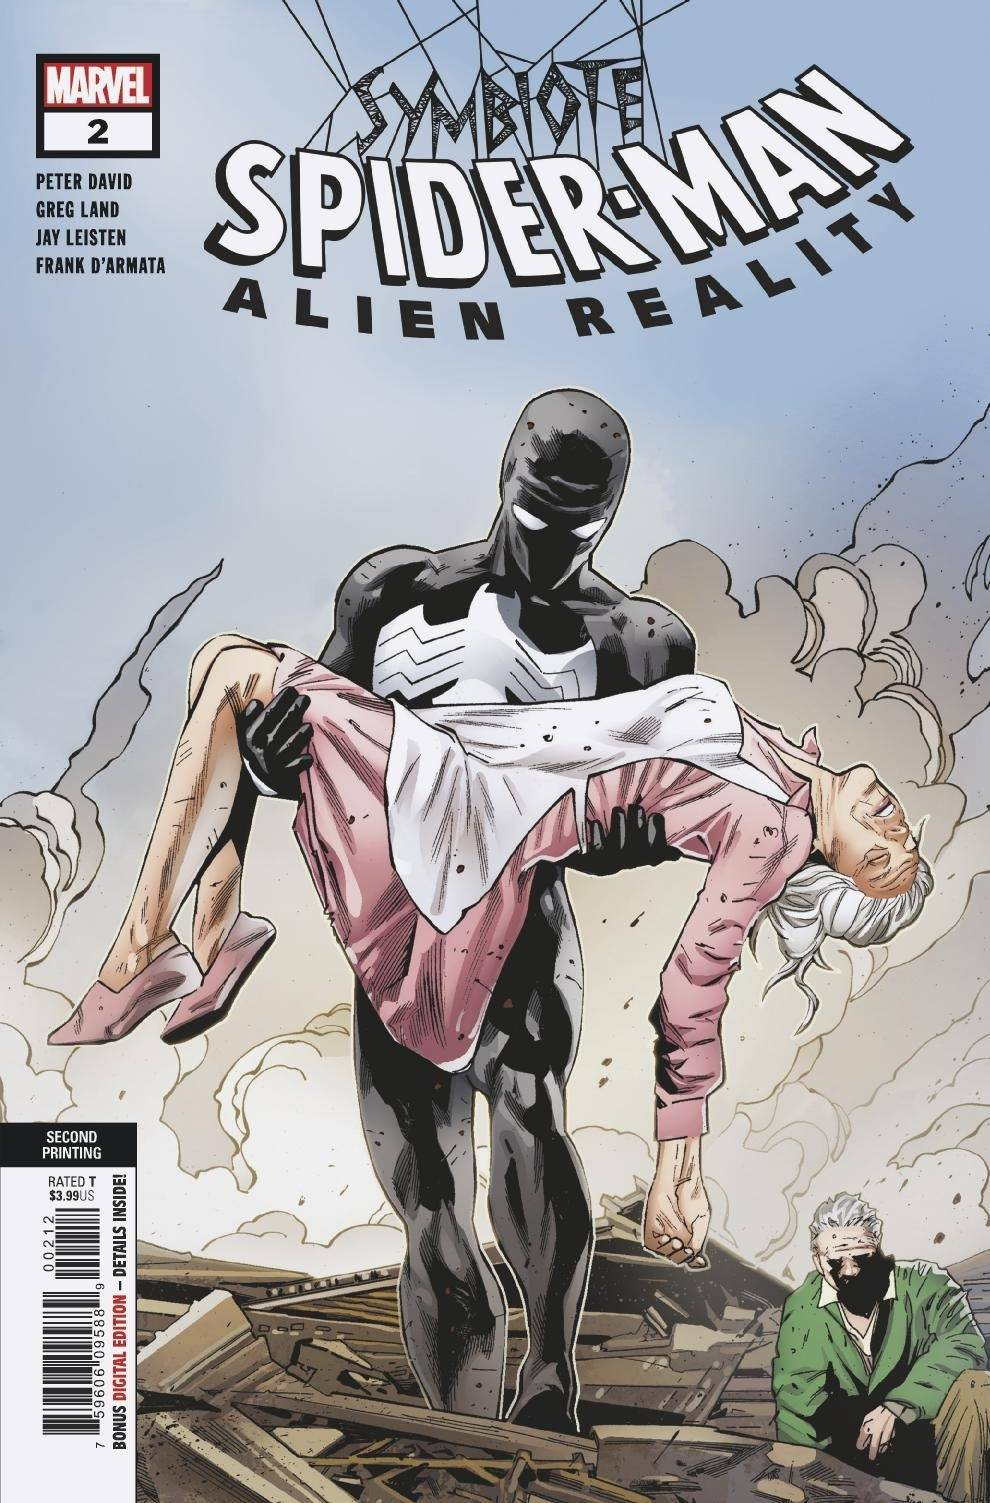 SYMBIOTE SPIDER-MAN ALIEN REALITY #2 (OF 5) 2ND PTG VAR